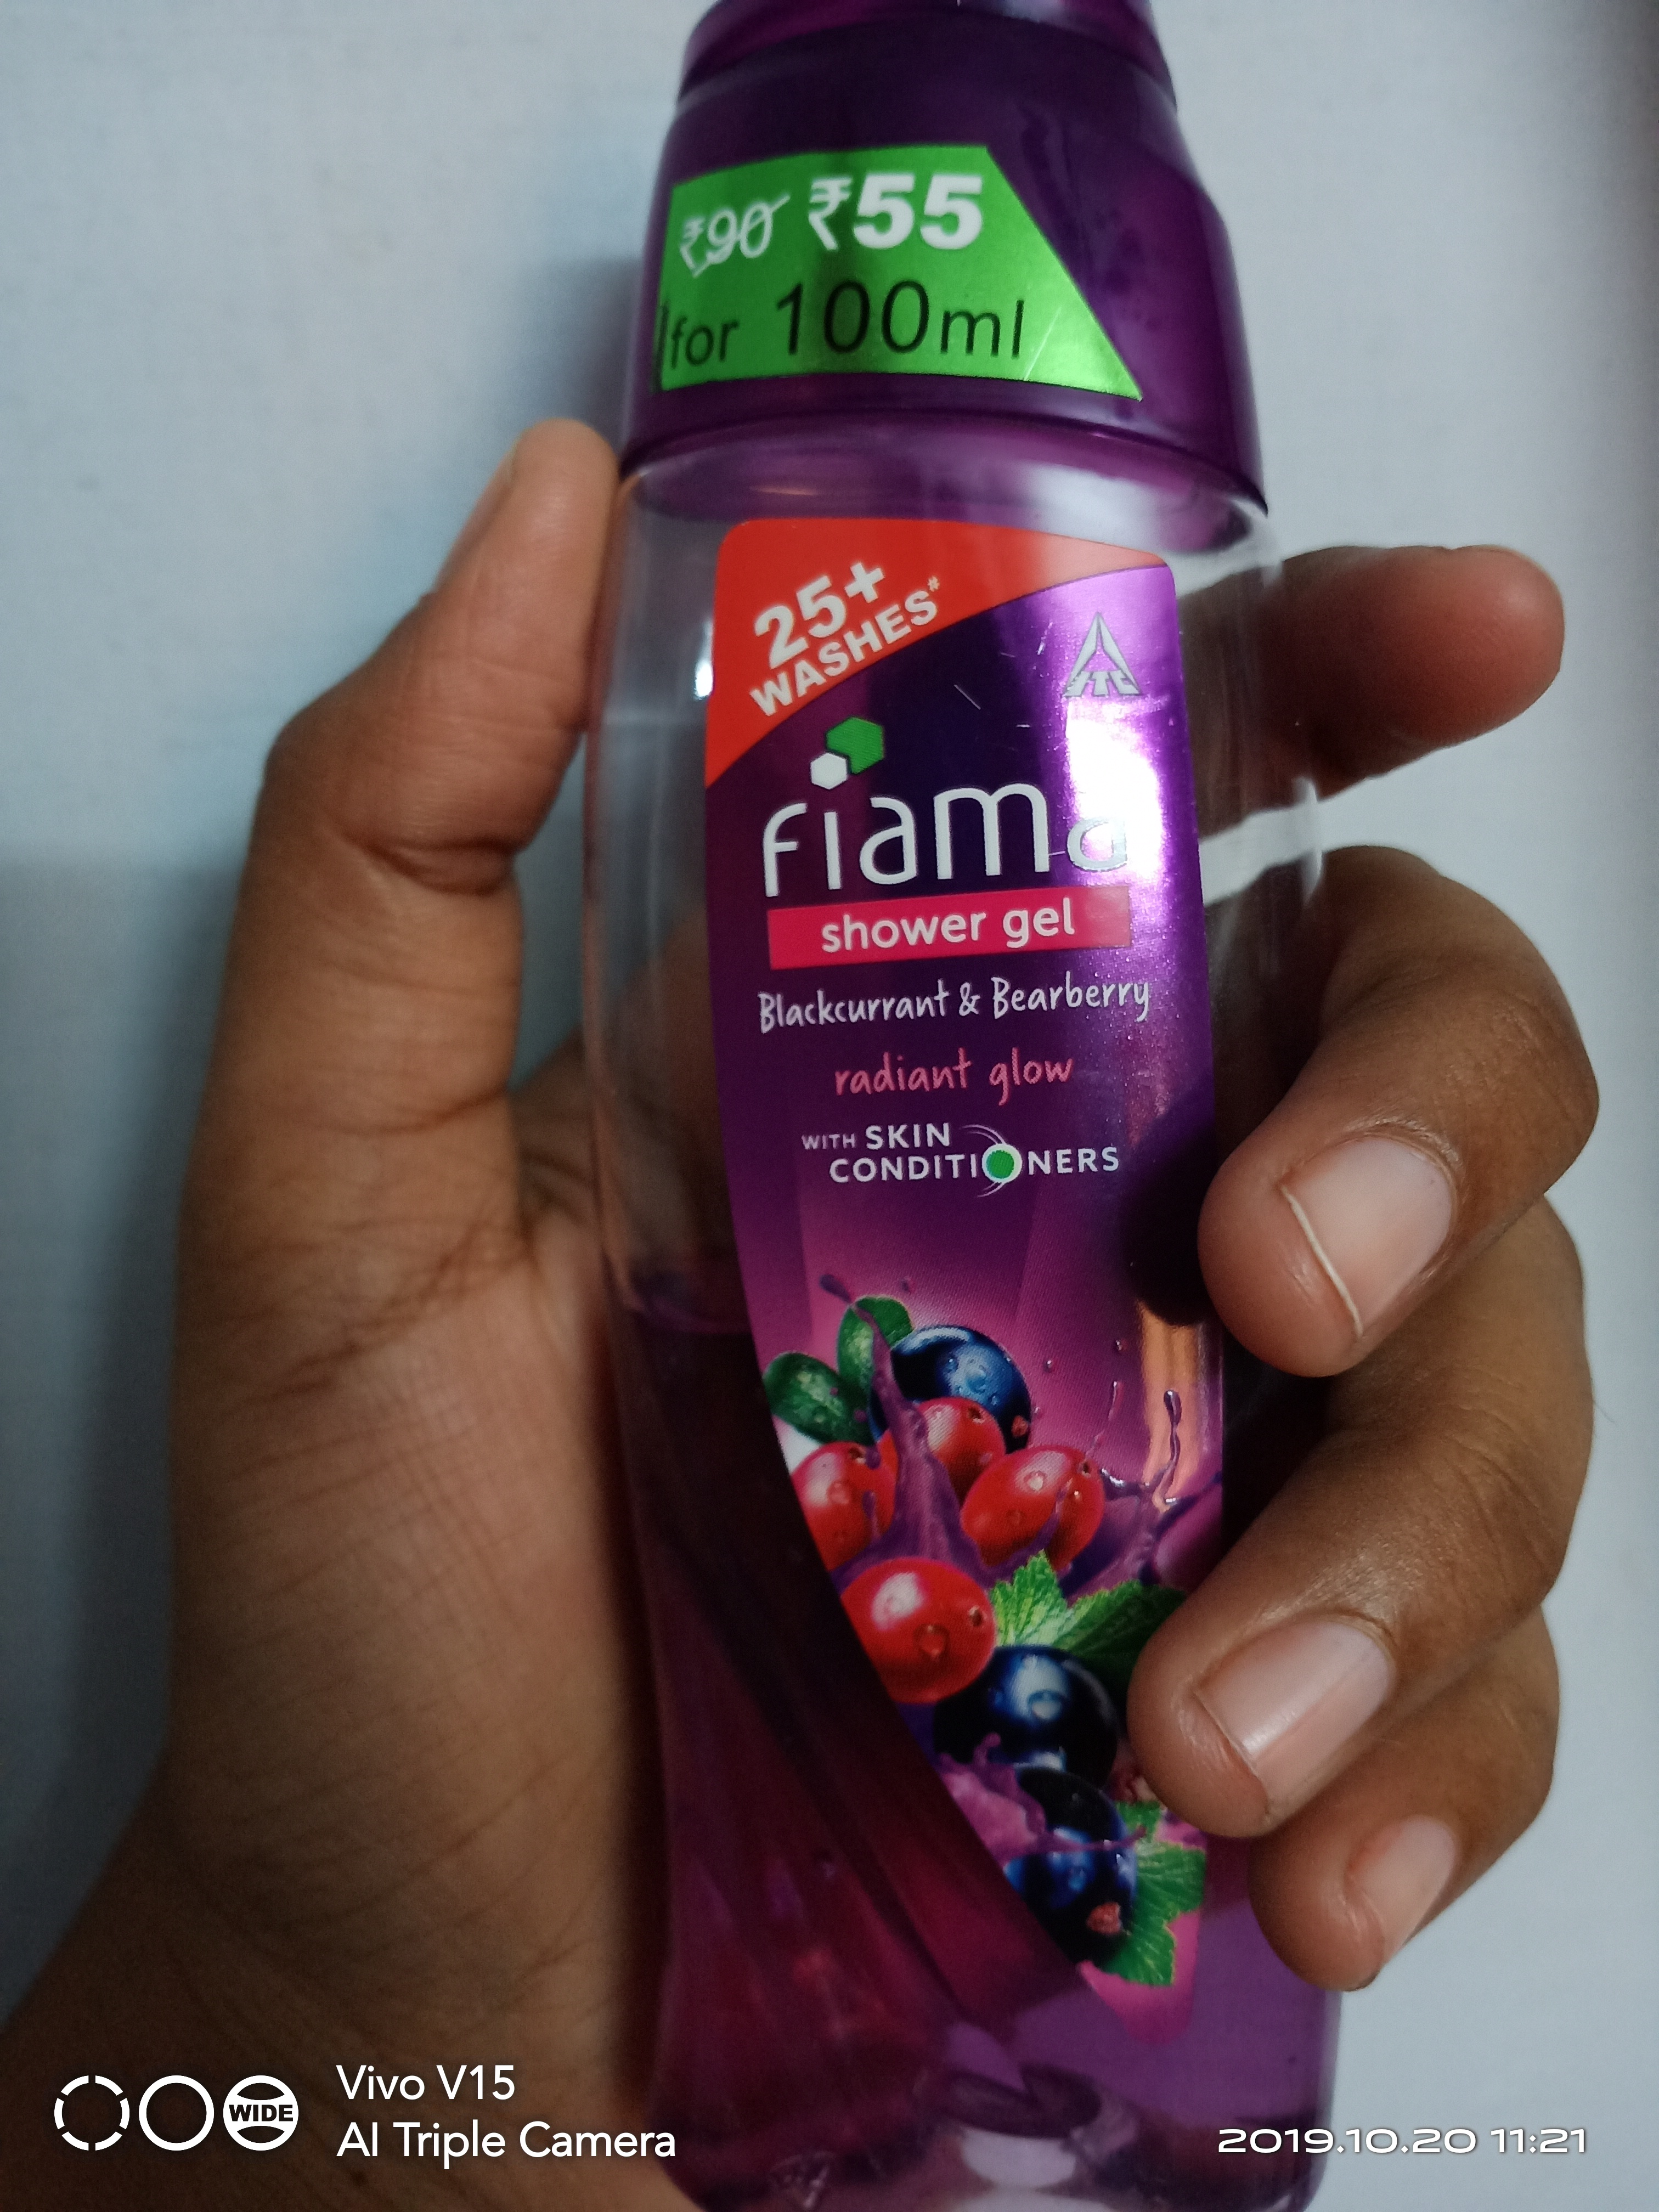 Fiama Blakcurrant & Bearberry Radiant Glow Gel Bar-Soothens not only your skin but also your mood with its pleasant fragrancr.-By mirudhu_varshini